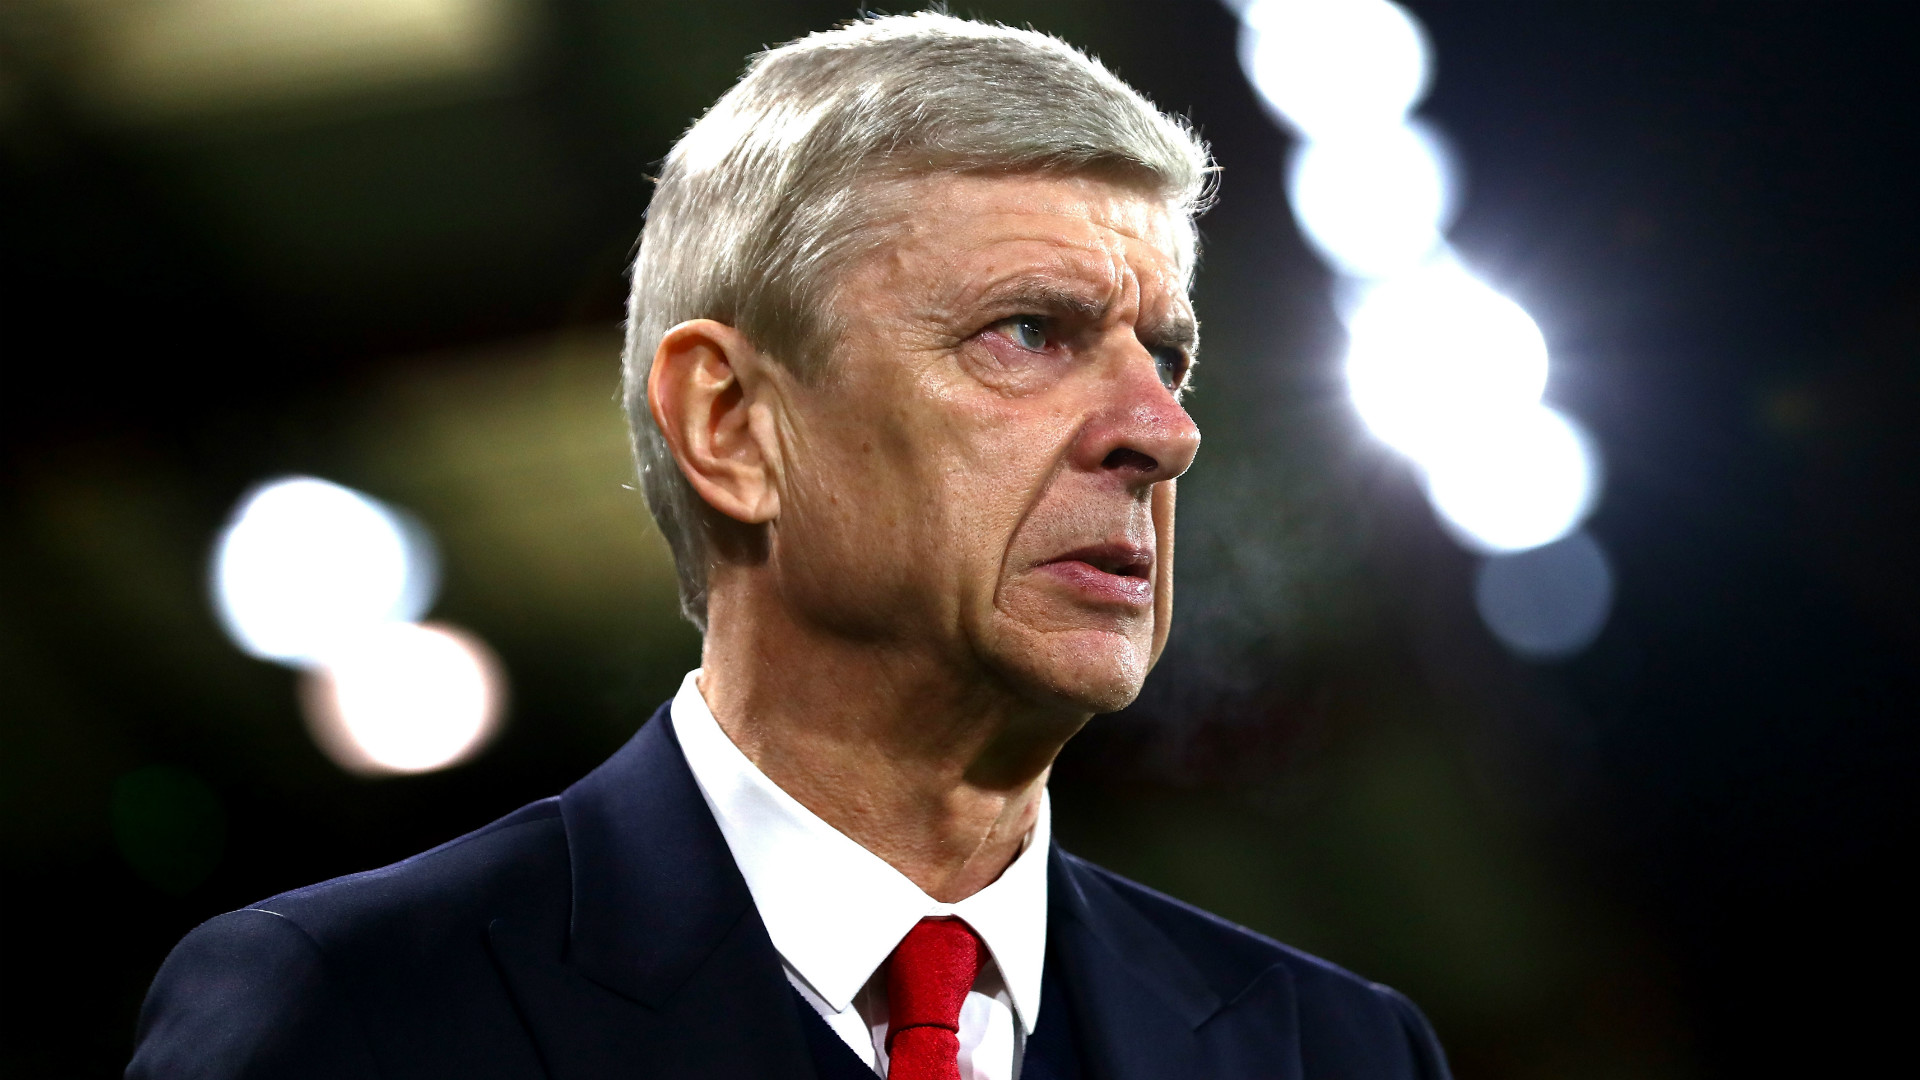 arsene wenger arsenal 9aux37nbxk4u1xfz0ep0up70p - Wenger: 'He Told Me He Is Coming To An End' - Ex Arsenal Striker Says Coach Will Leave Soon